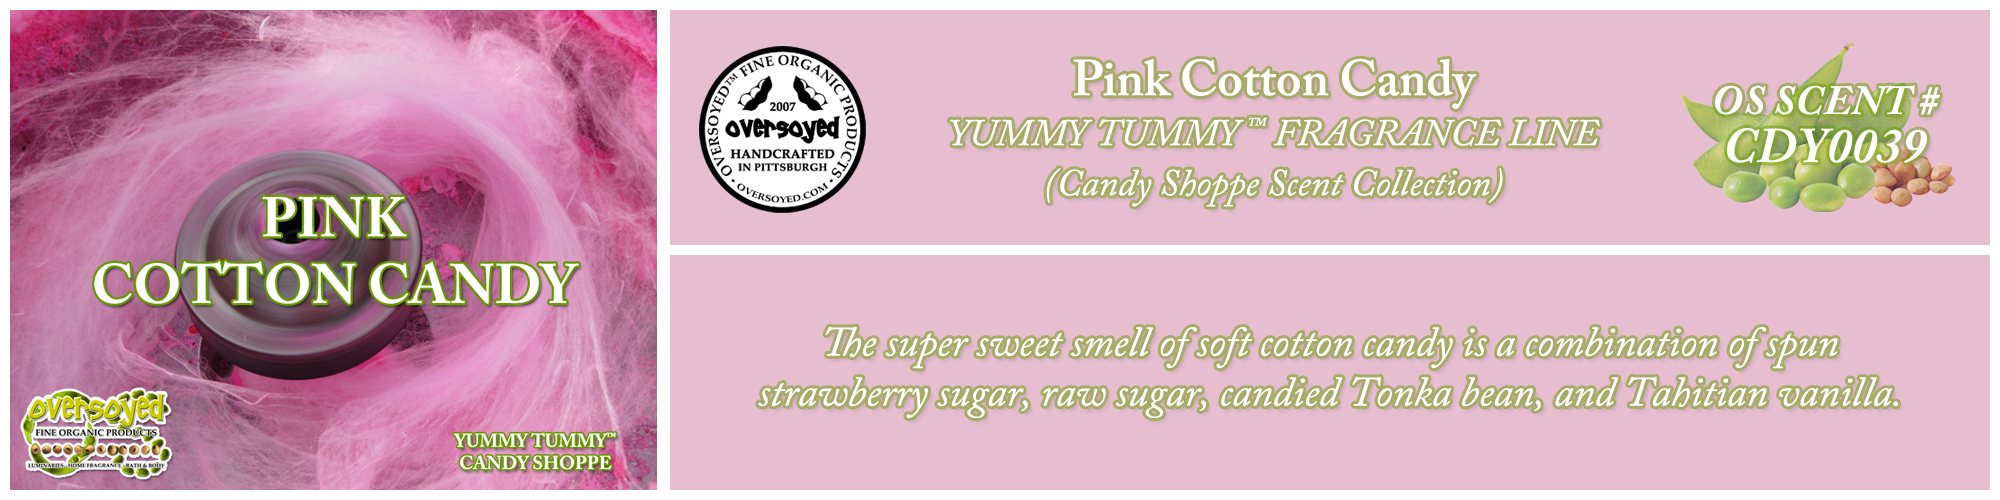 Pink Cotton Candy Handcrafted Products Collection